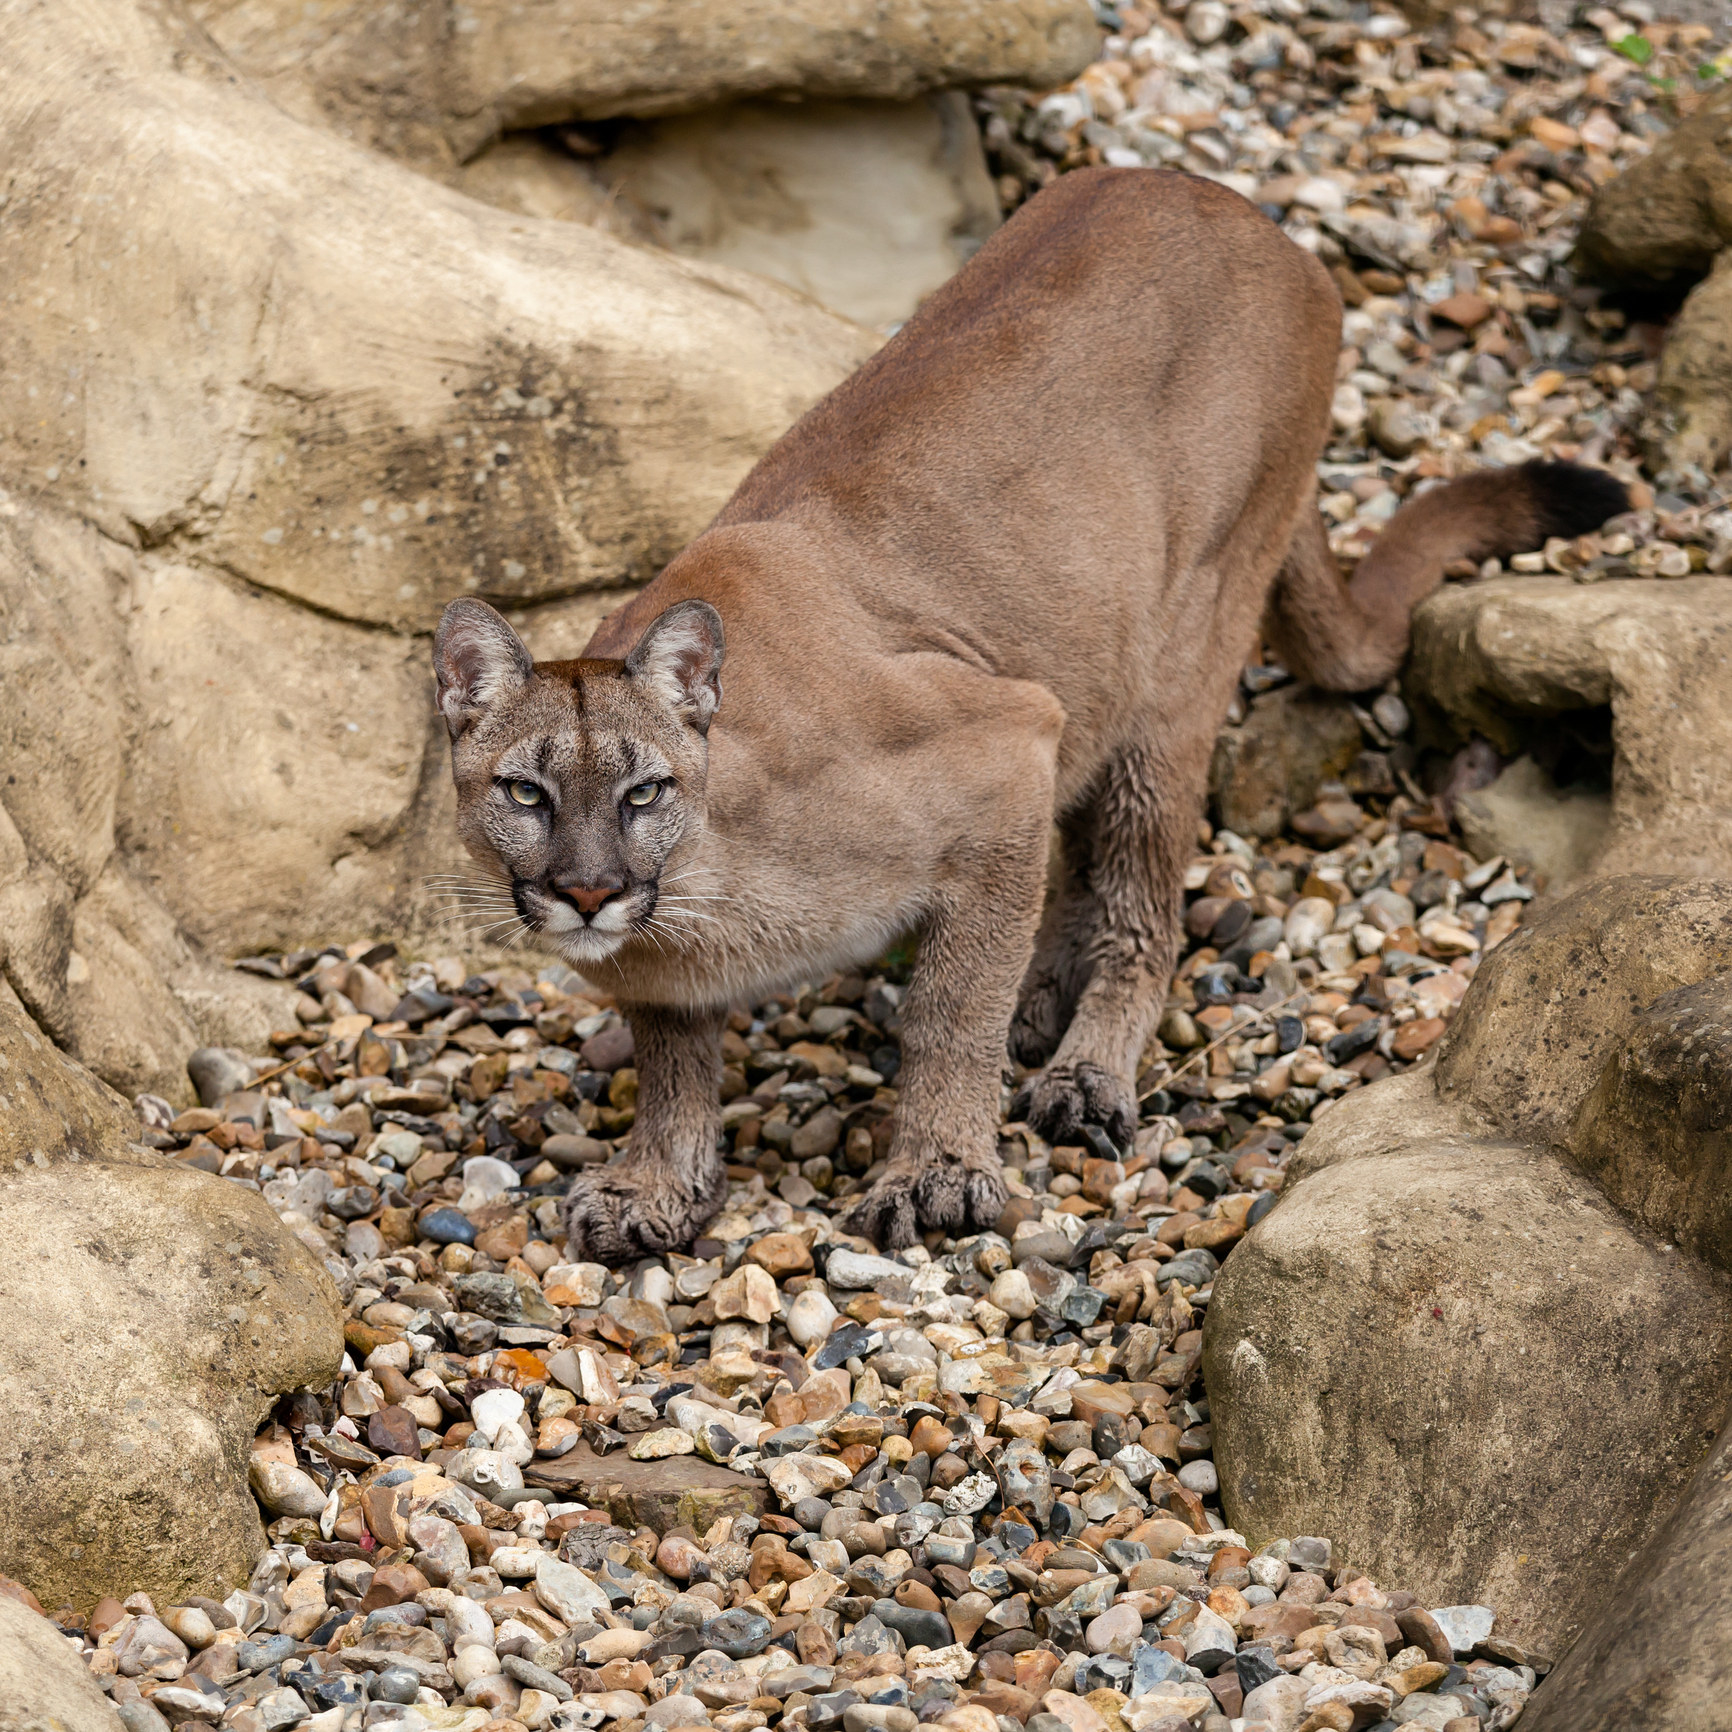 A mountain lion pouncing and ready to attack